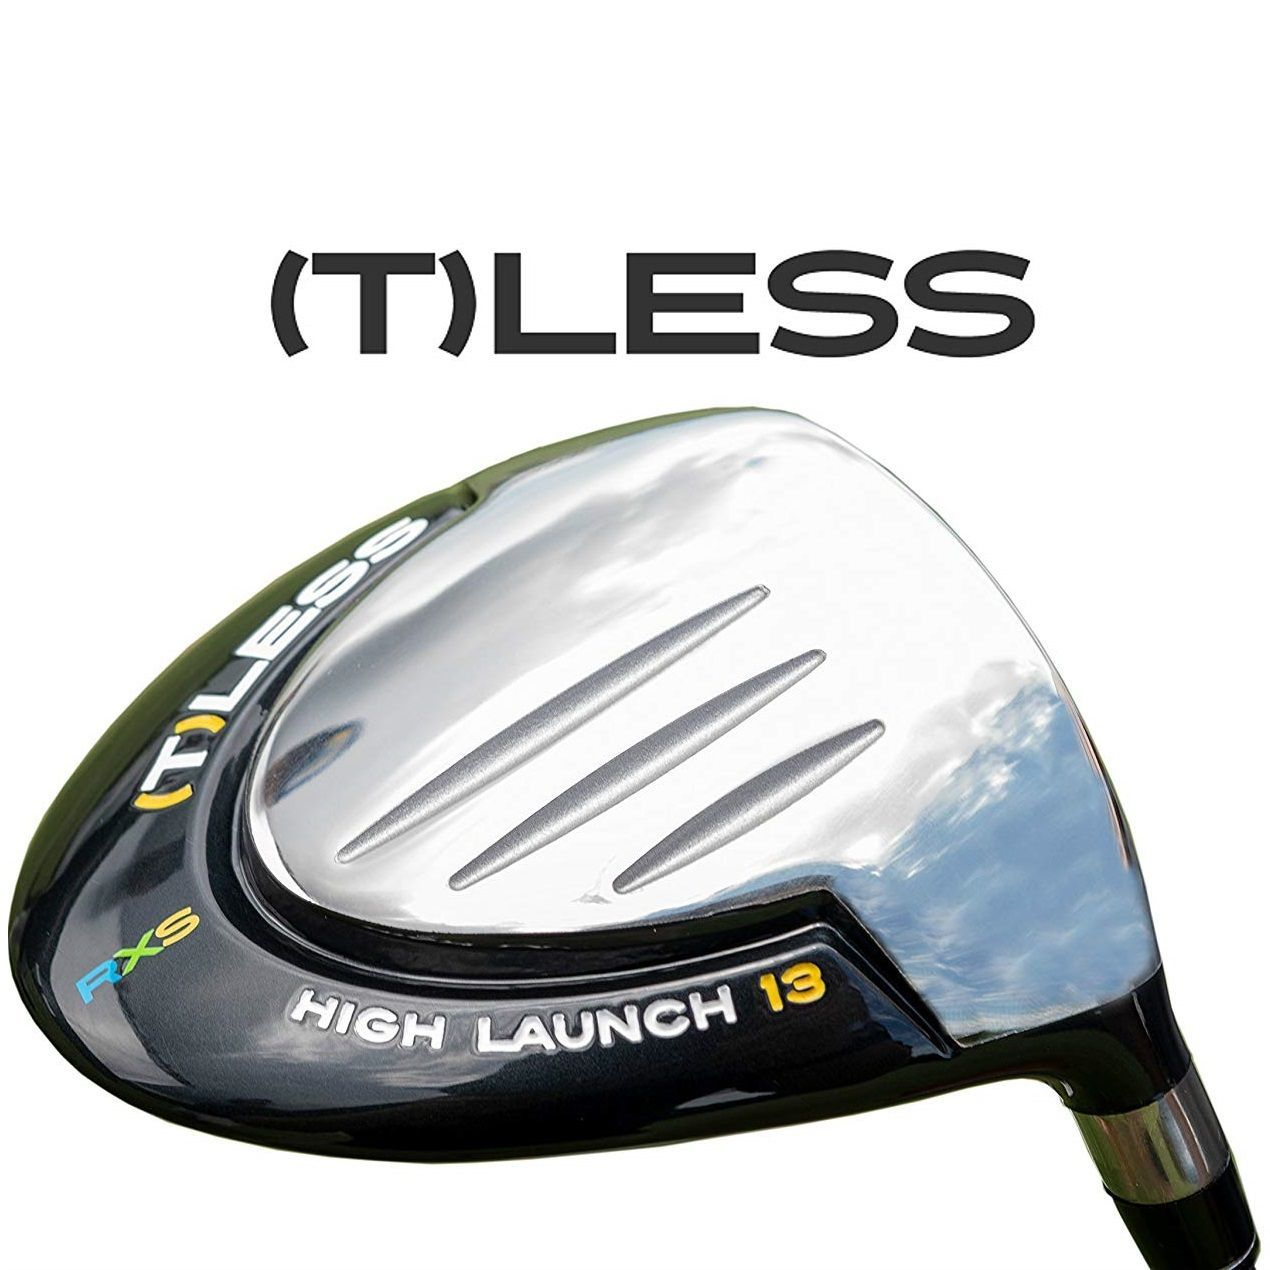 highest rated golf irons 2019